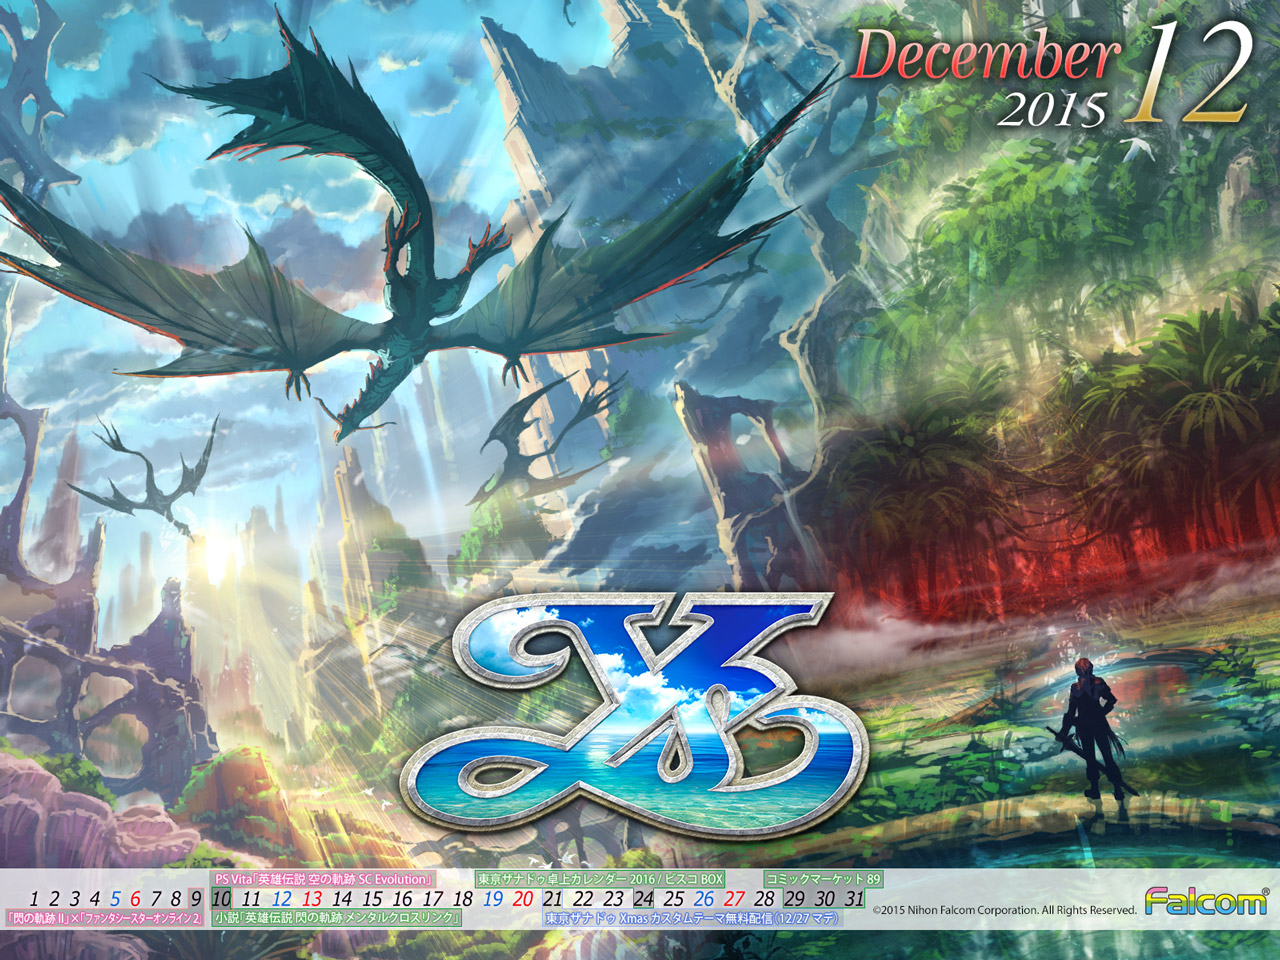 Falcom S December Calendar Now Available Featuring Ys Viii